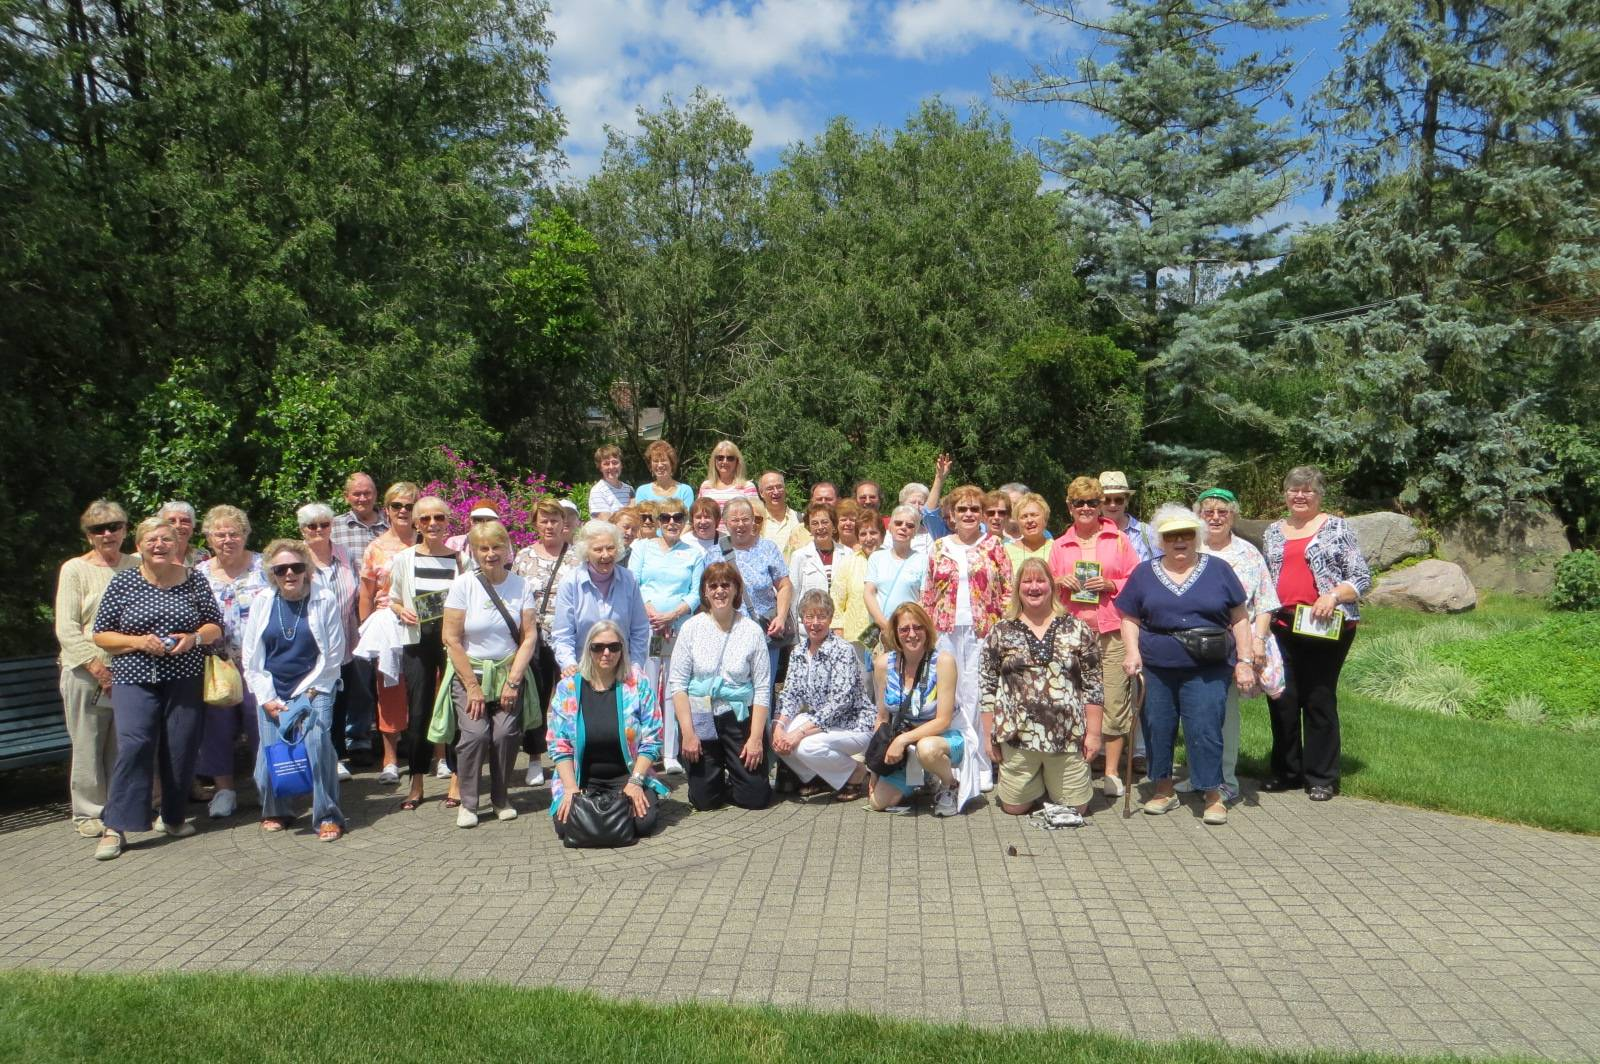 Members of the Des Plaines Garden Club admiring the LA Paloma Gardens in Rockford, IL